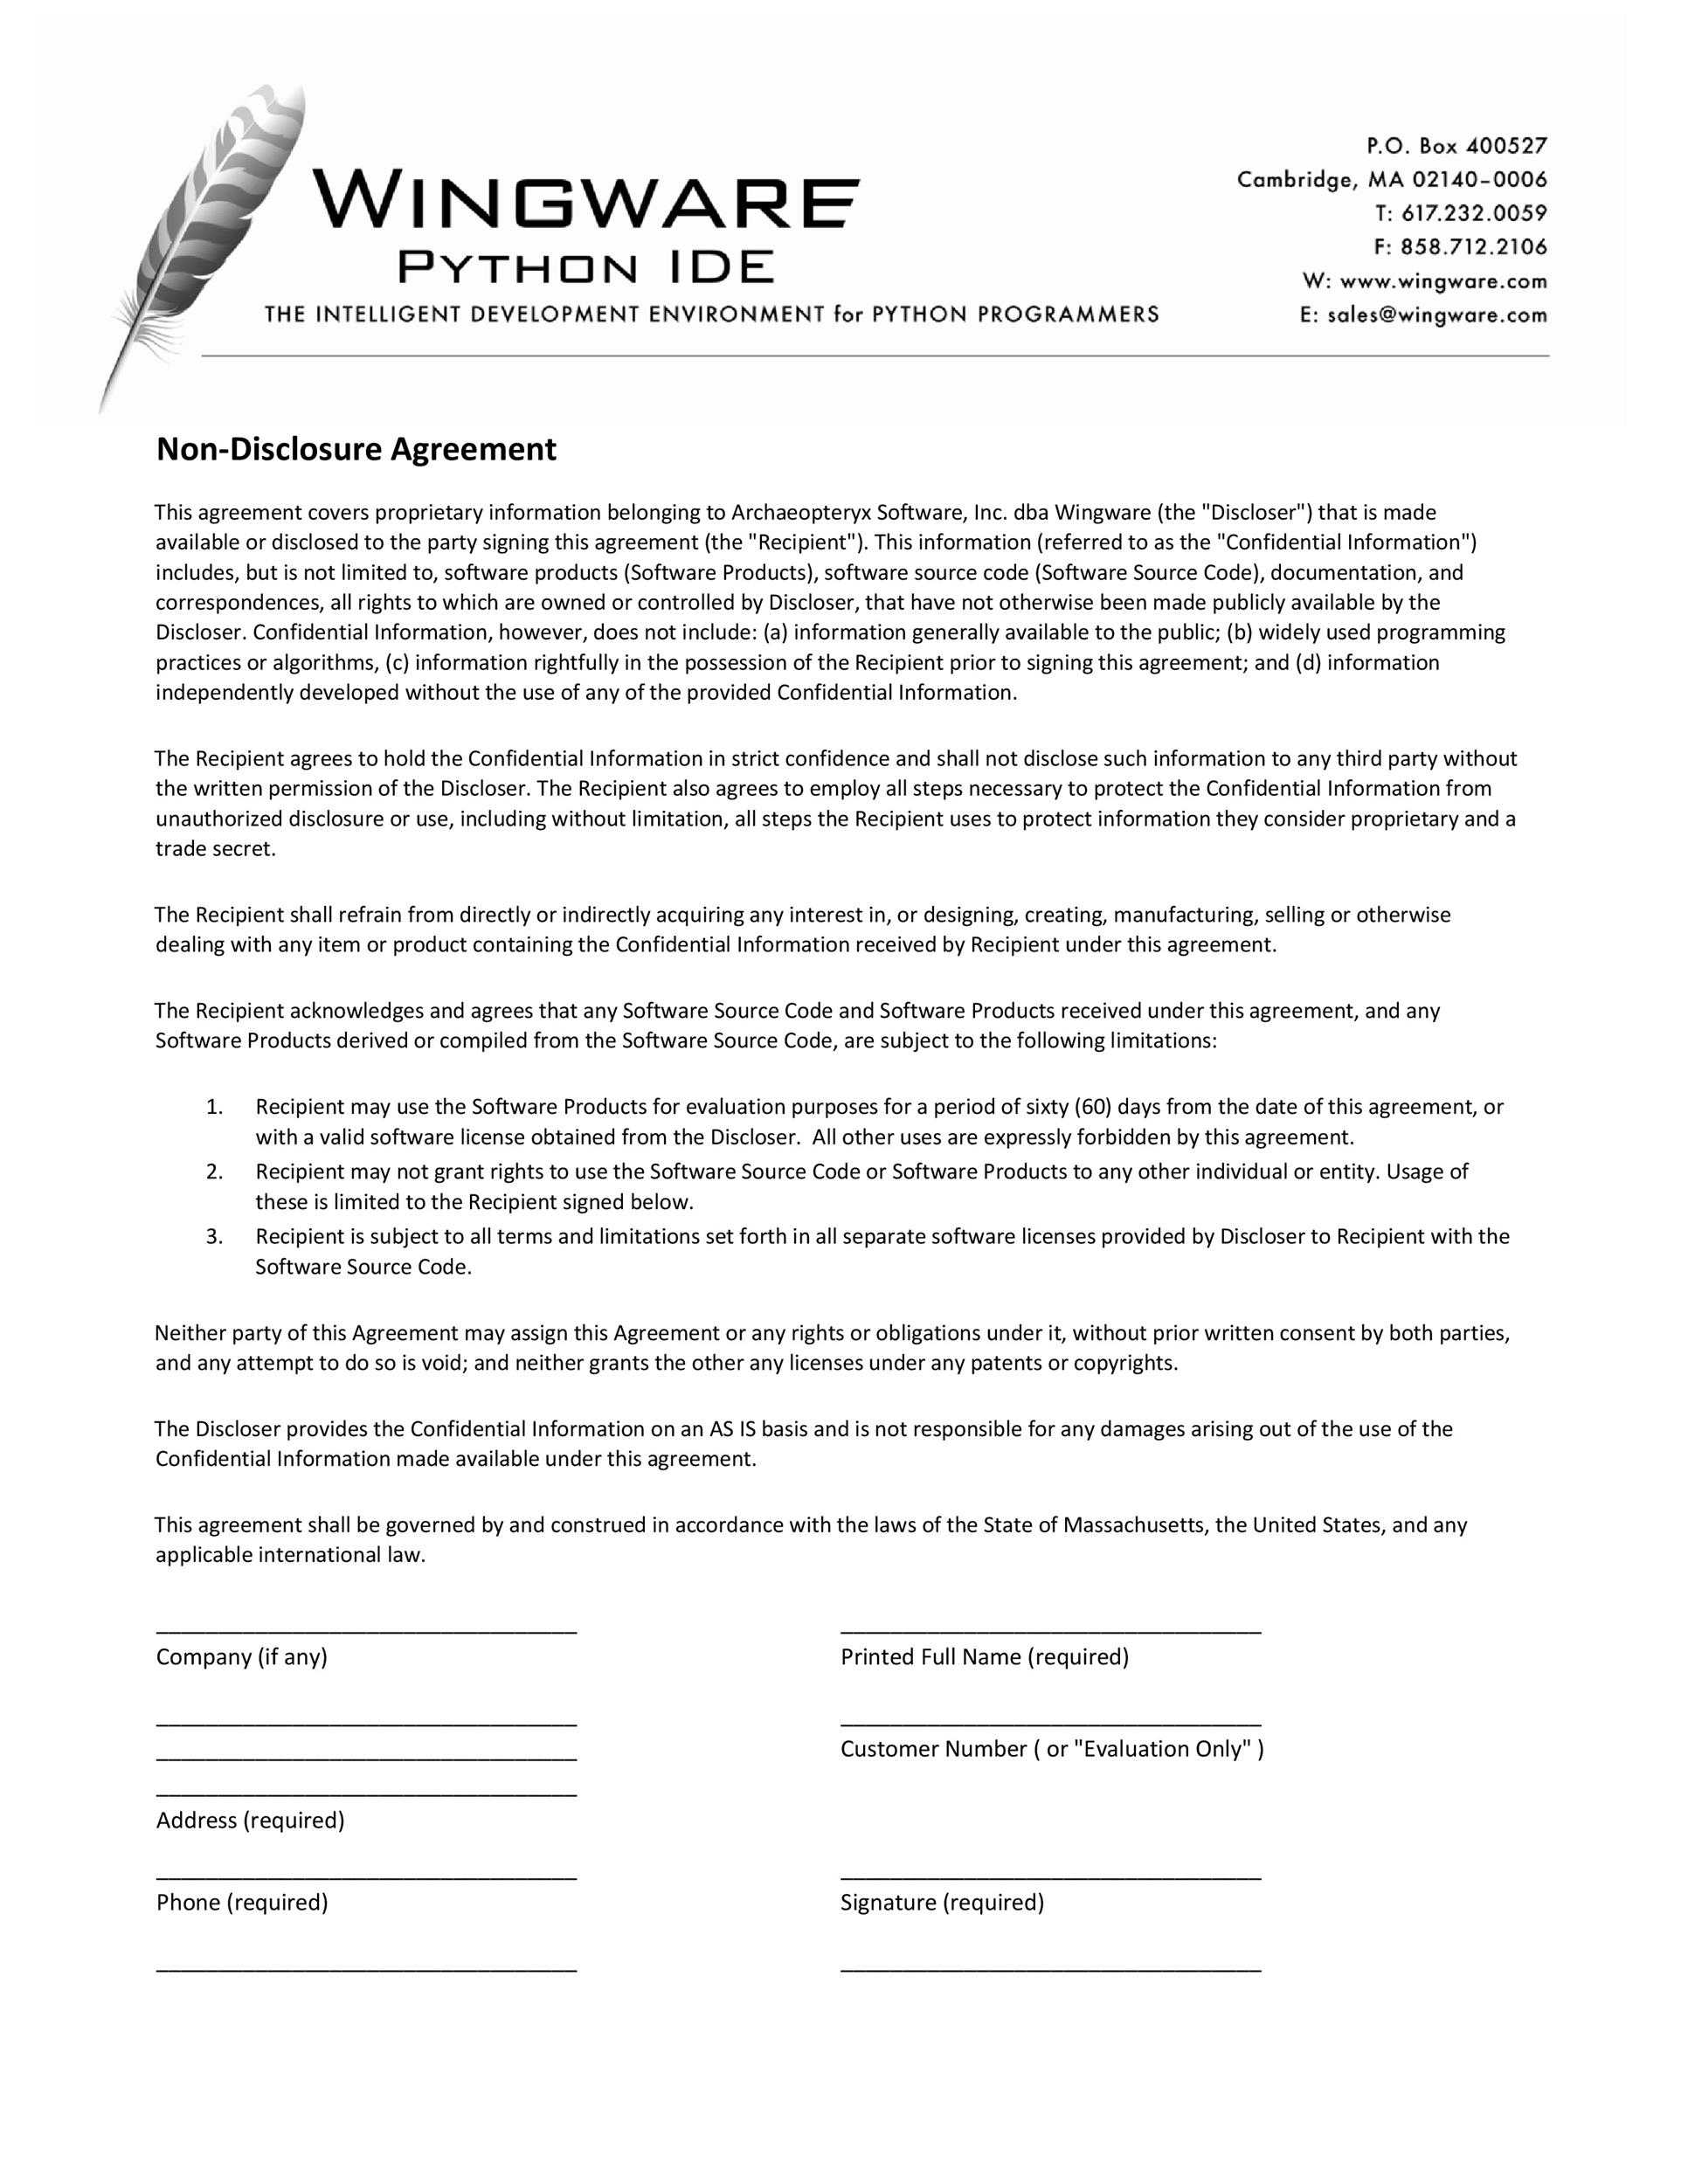 Free Non Disclosure Agreement Template 30